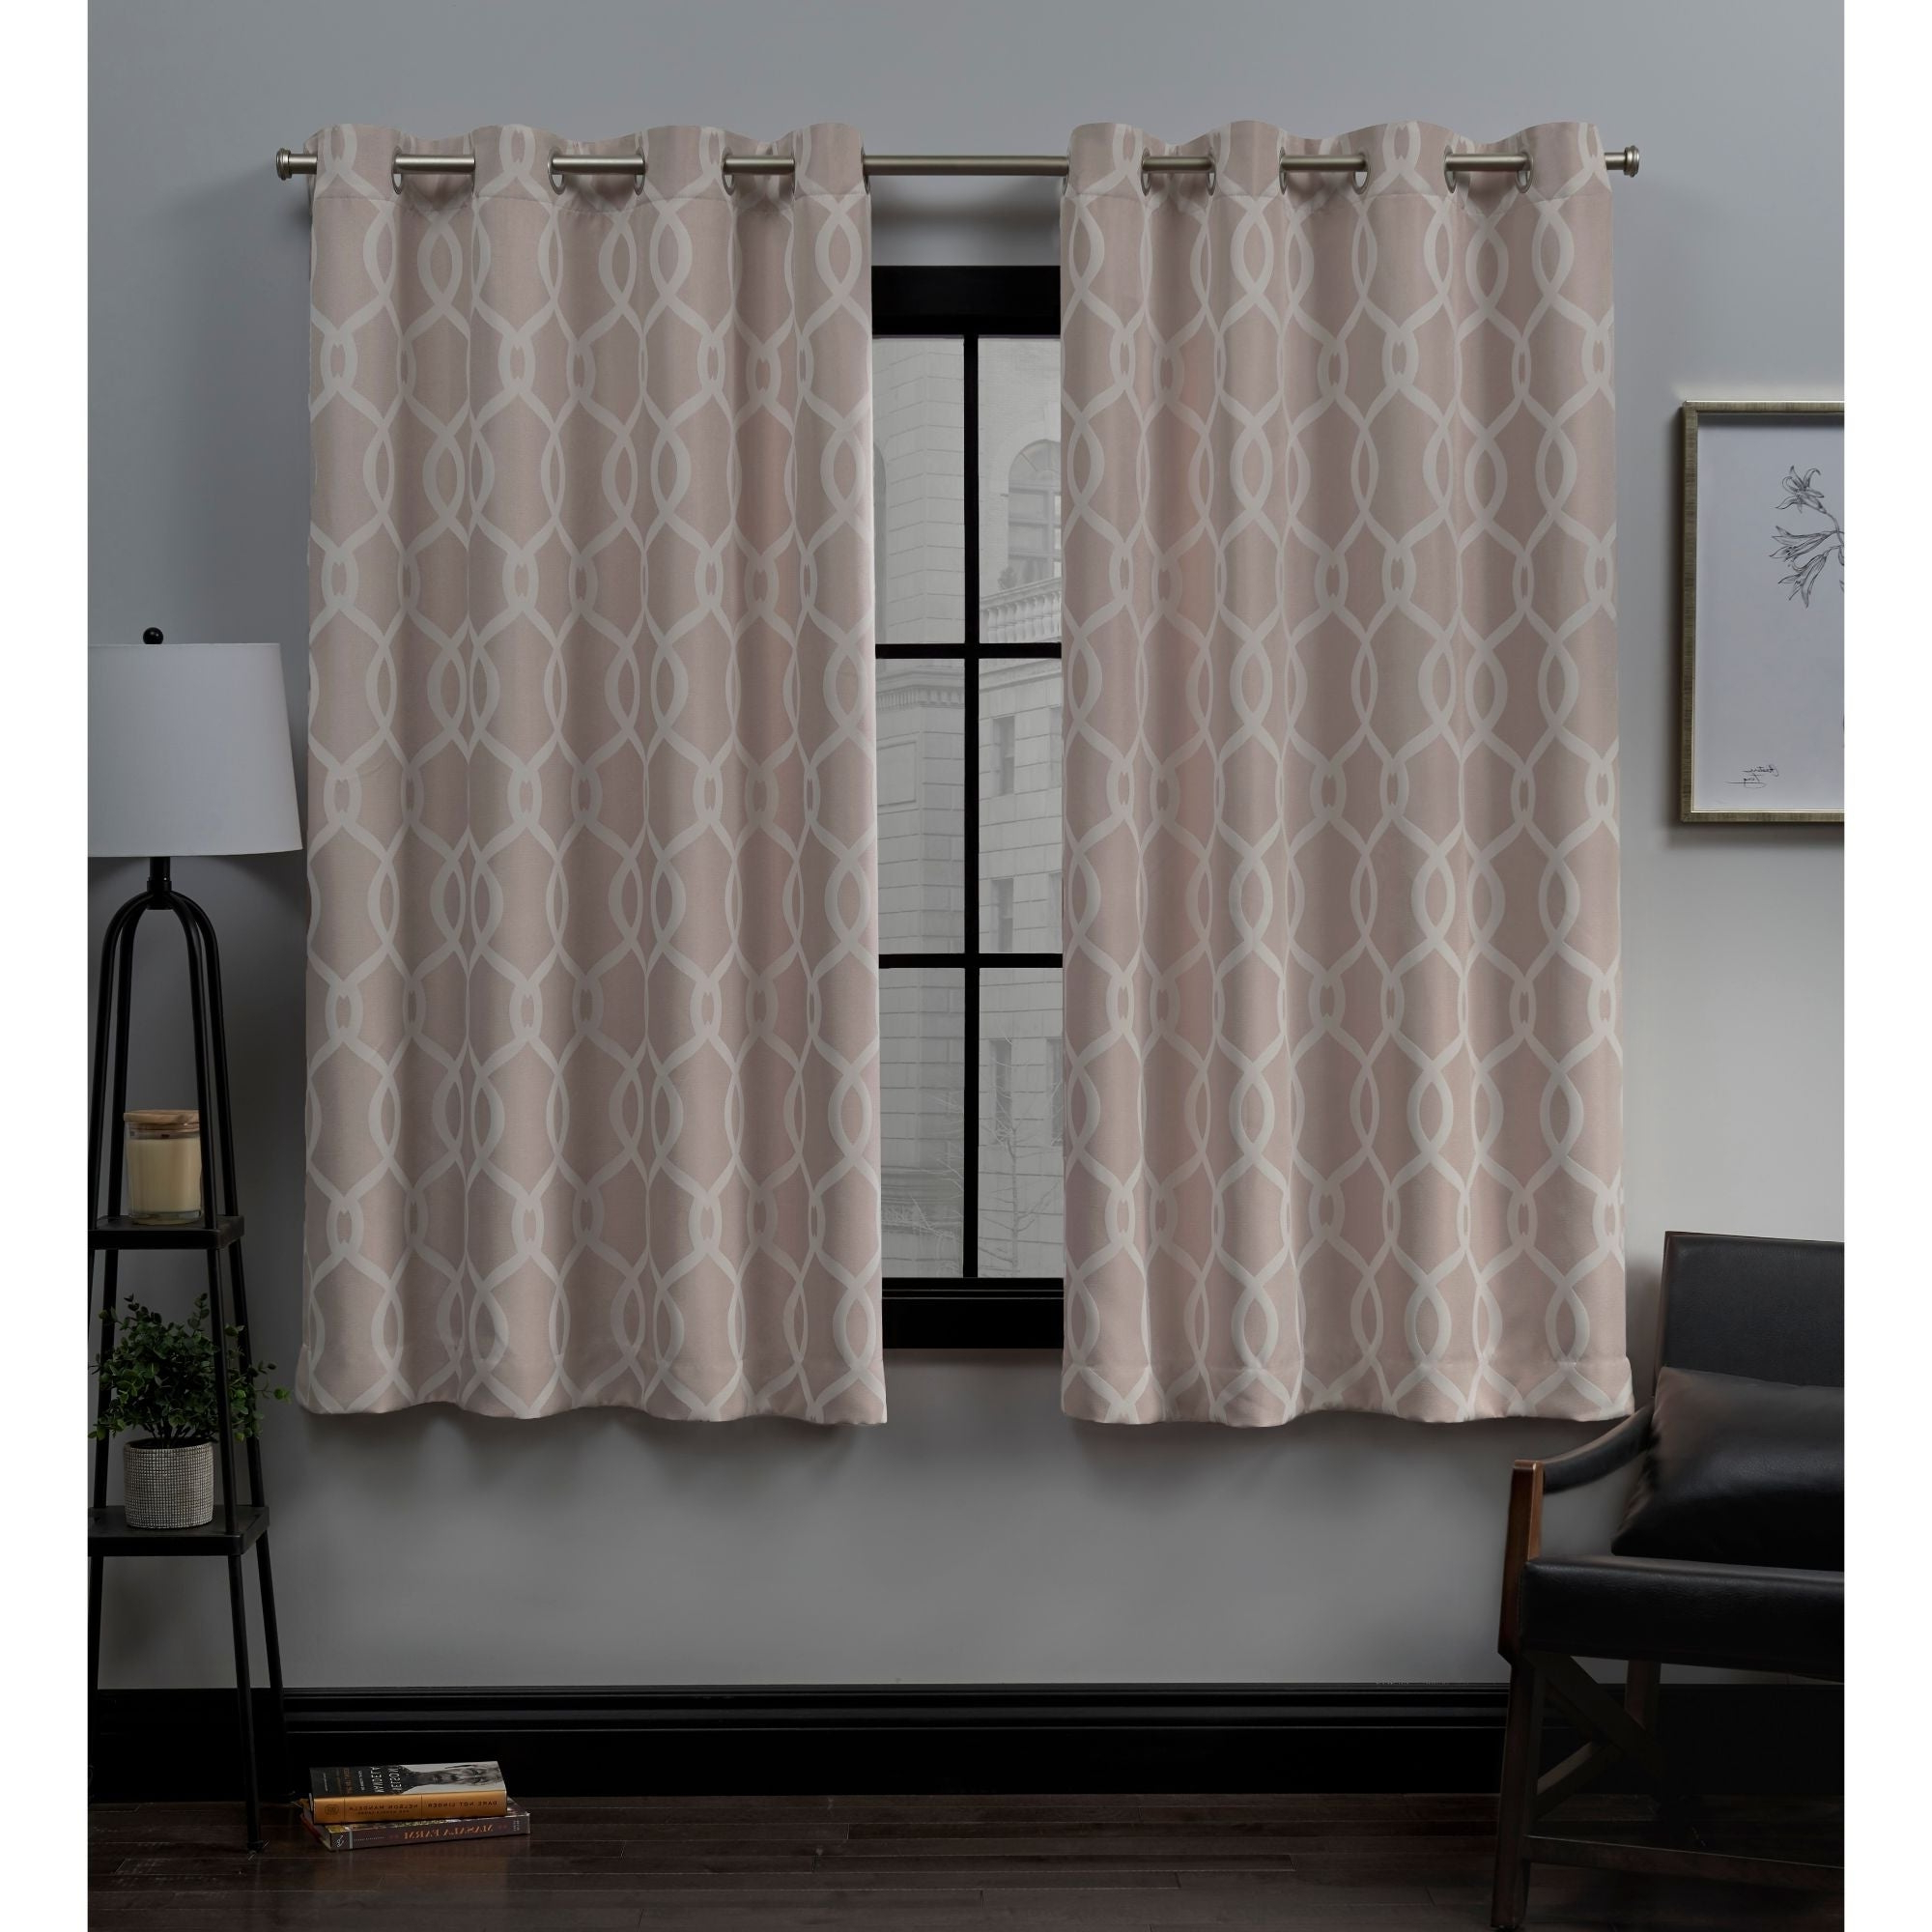 Trendy Ati Home Trilogi Woven Blackout Grommet Top Curtain Panel Pair Inside Easton Thermal Woven Blackout Grommet Top Curtain Panel Pairs (View 19 of 20)